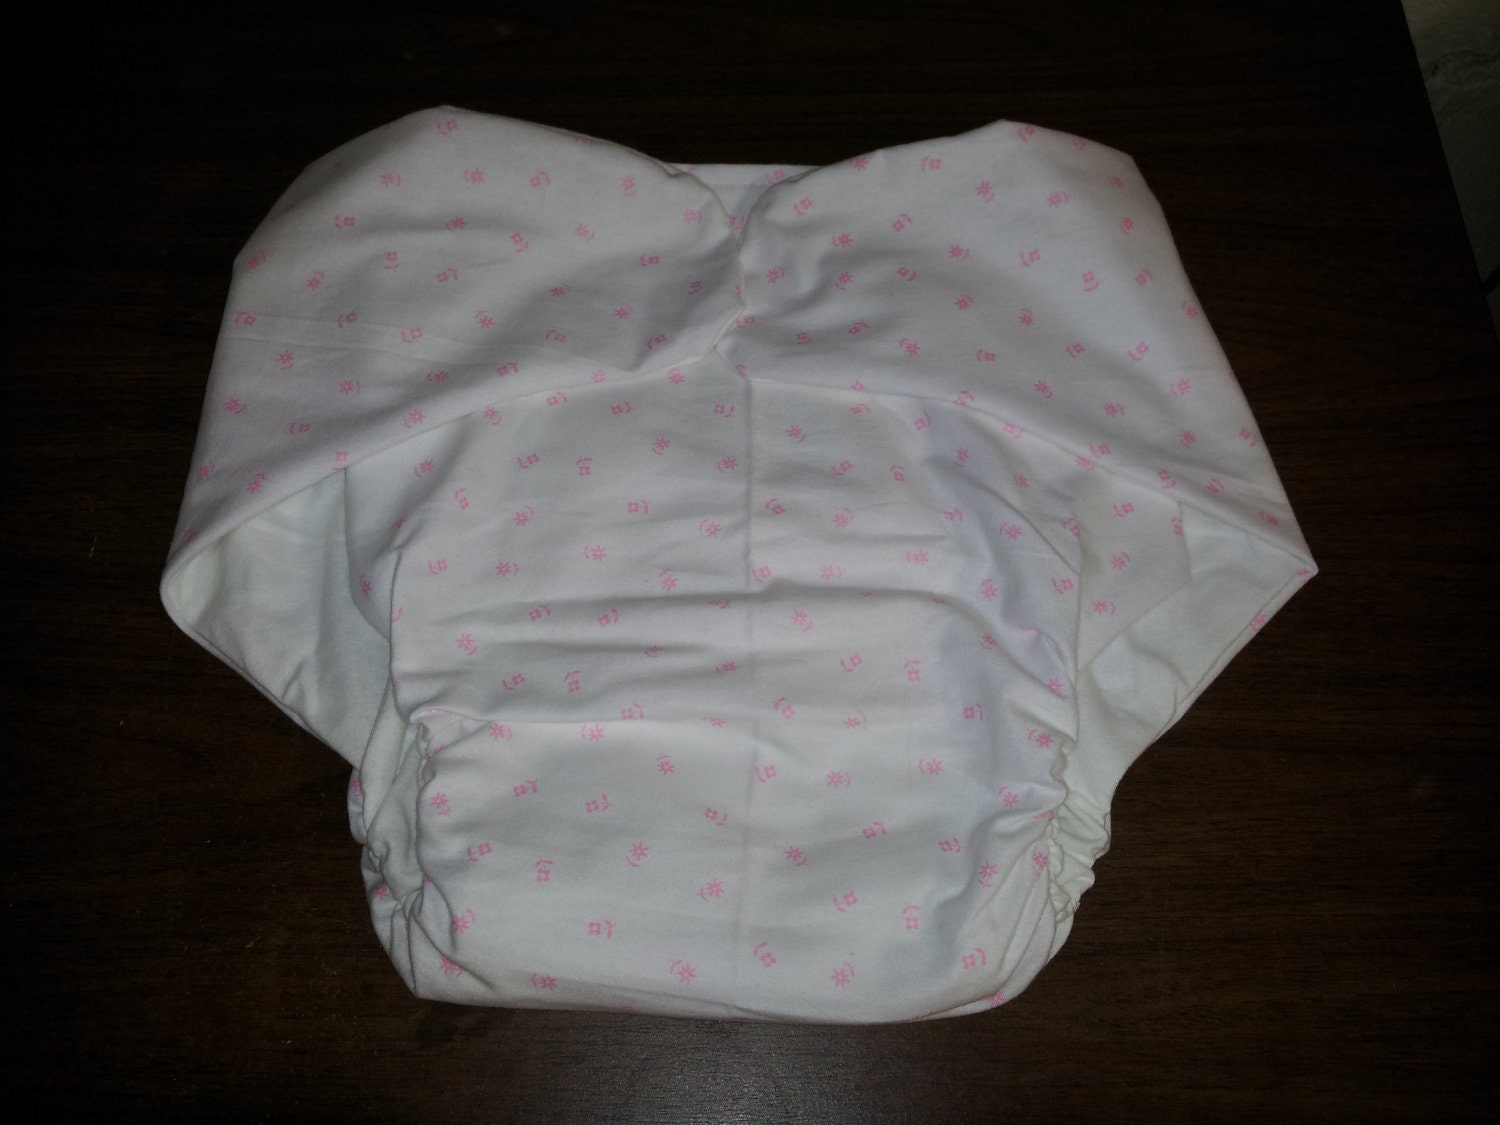 This is an adult sized cloth diaper. This diaper is 100% cotton flannel.